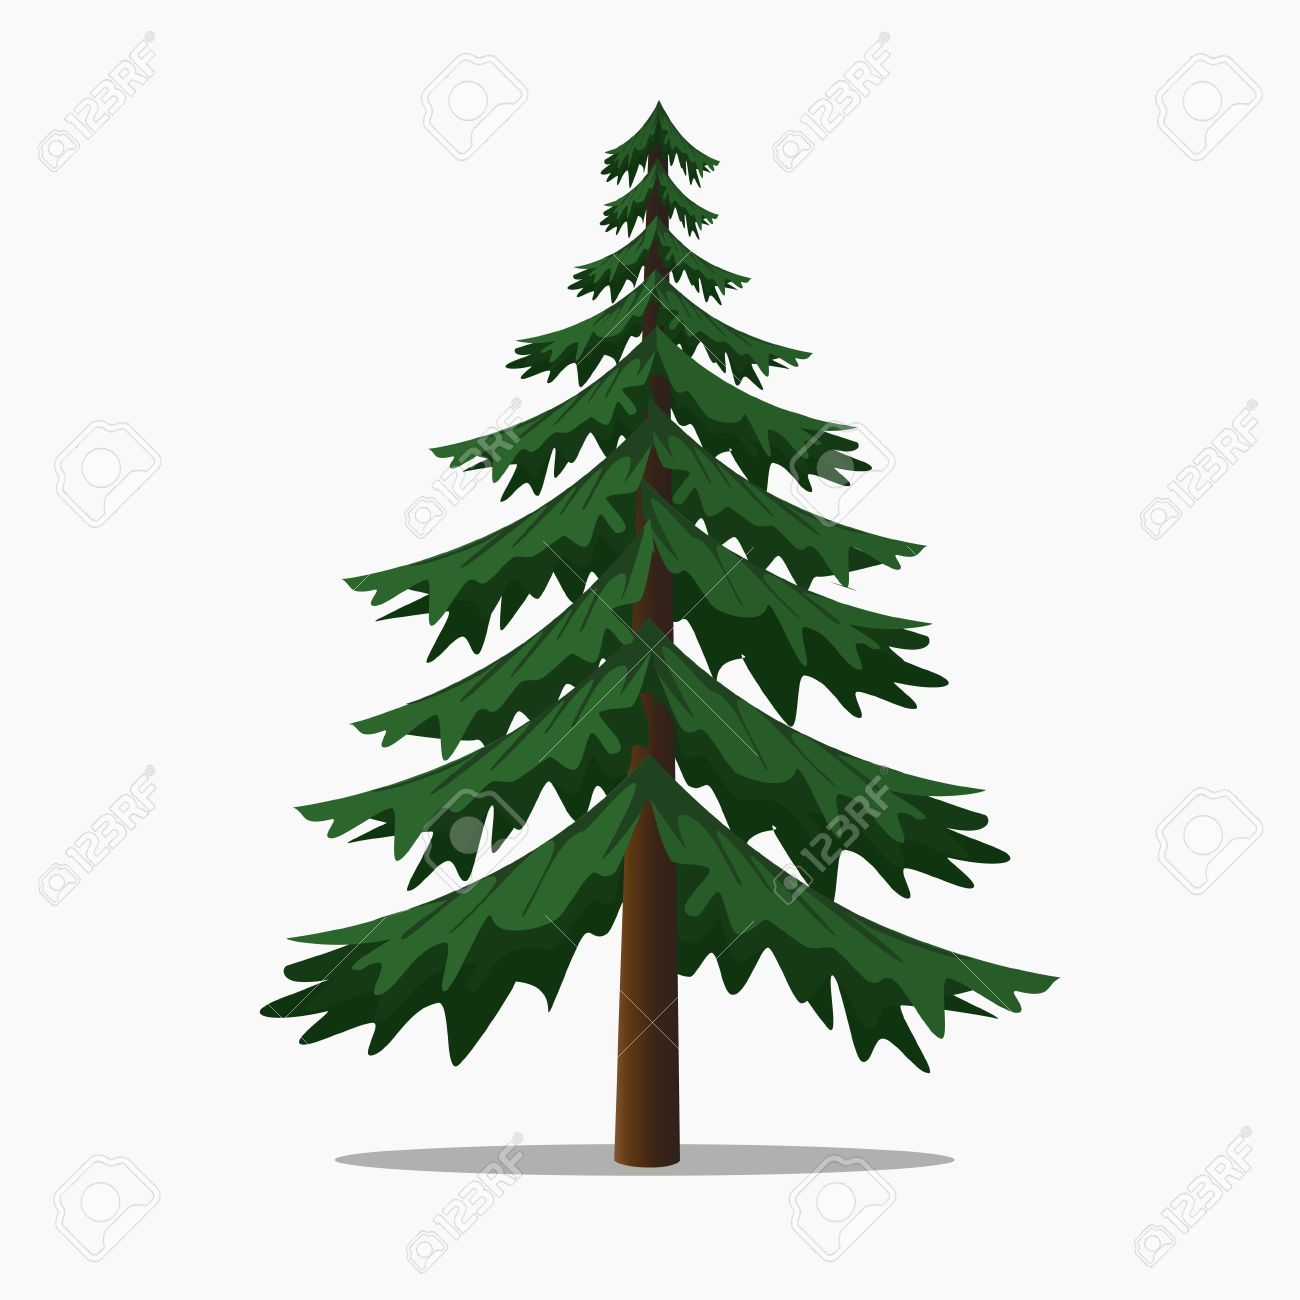 Pine Trees Vector Illustration.isolated Fir and Coniferous Tree. - 68285610